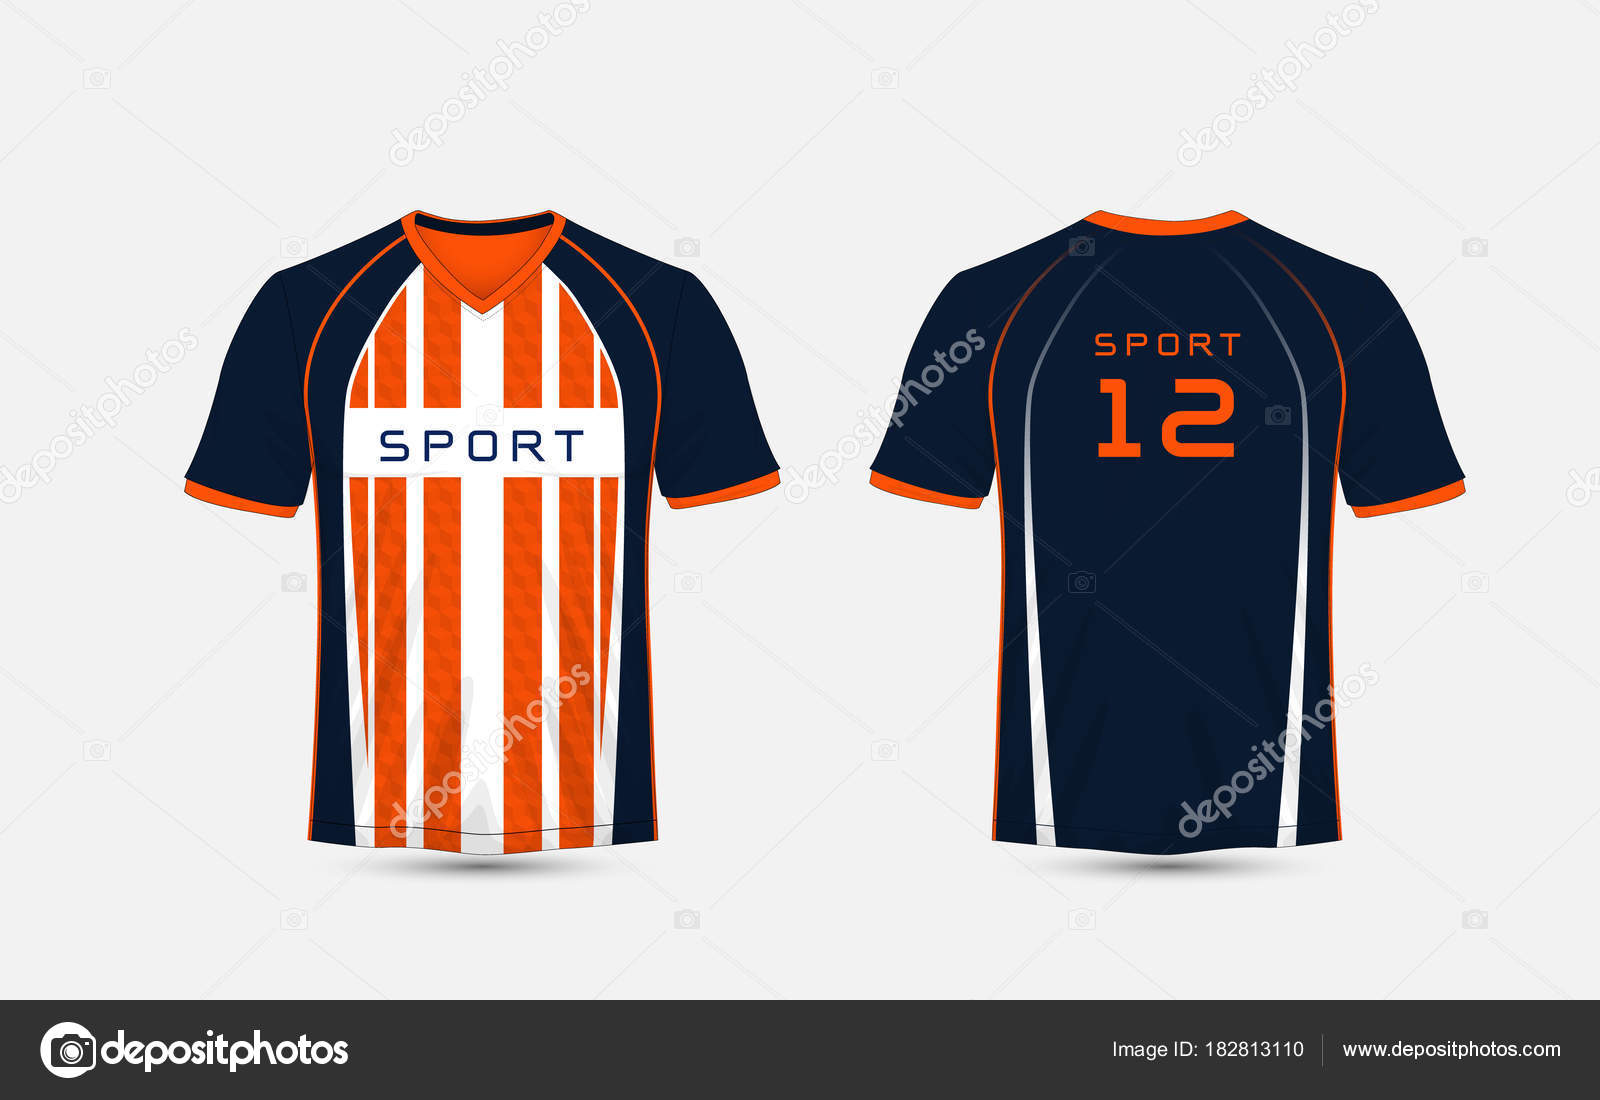 6a9308836 Blue, White and orange stripe pattern sport football kits, jersey, t-shirt  design template– stock illustration